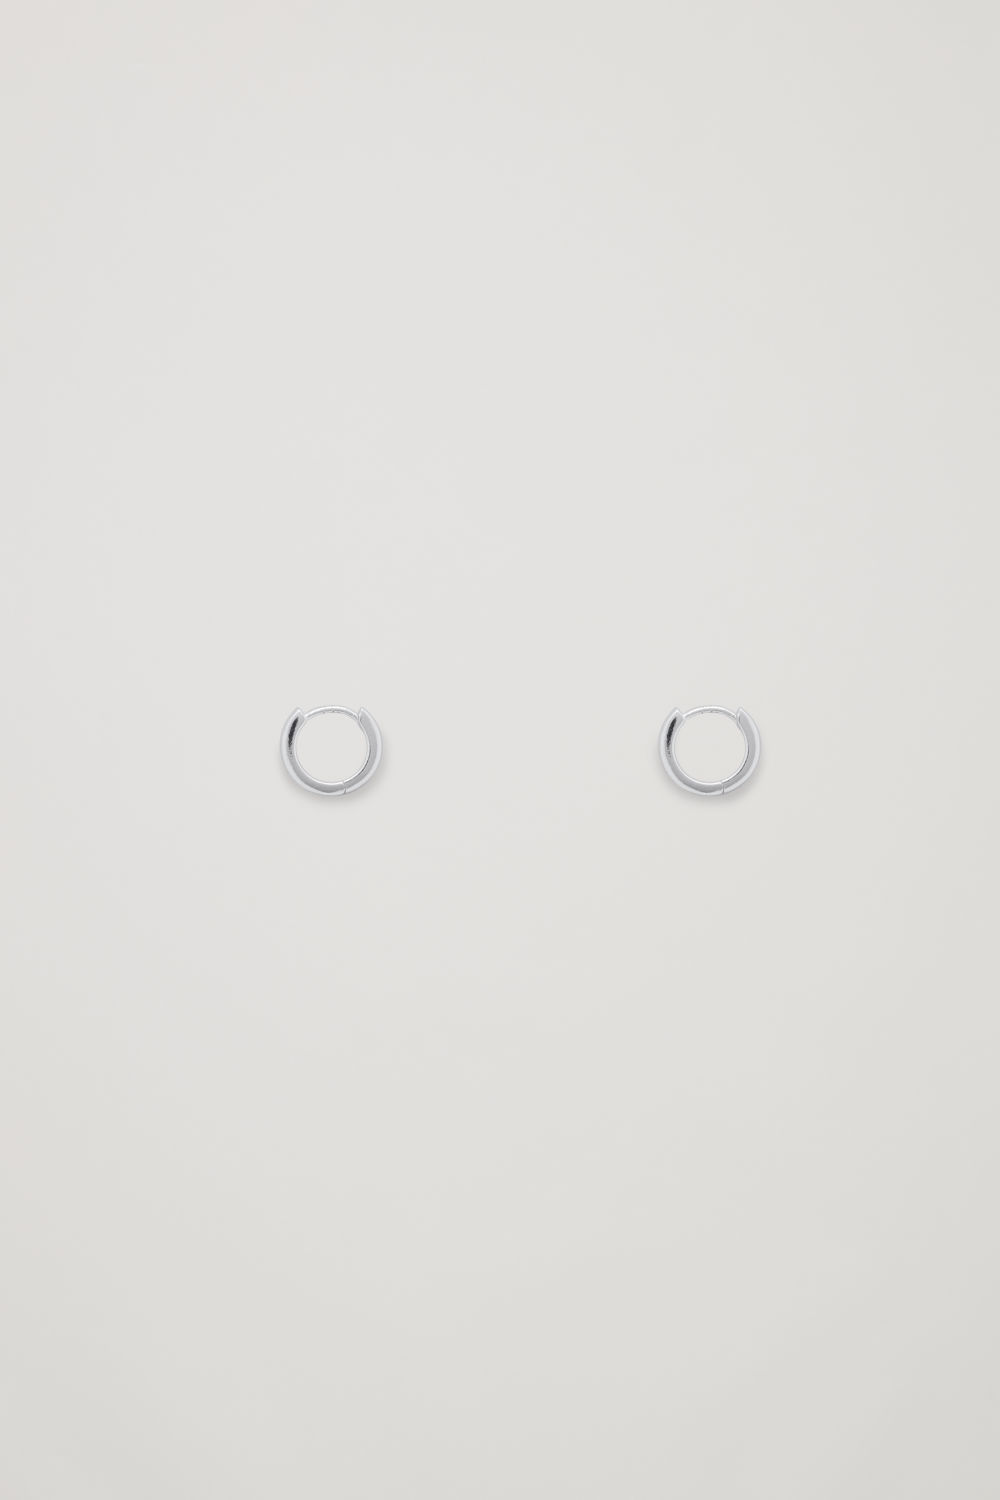 STERLING SILVER MICRO HOOP EARRINGS